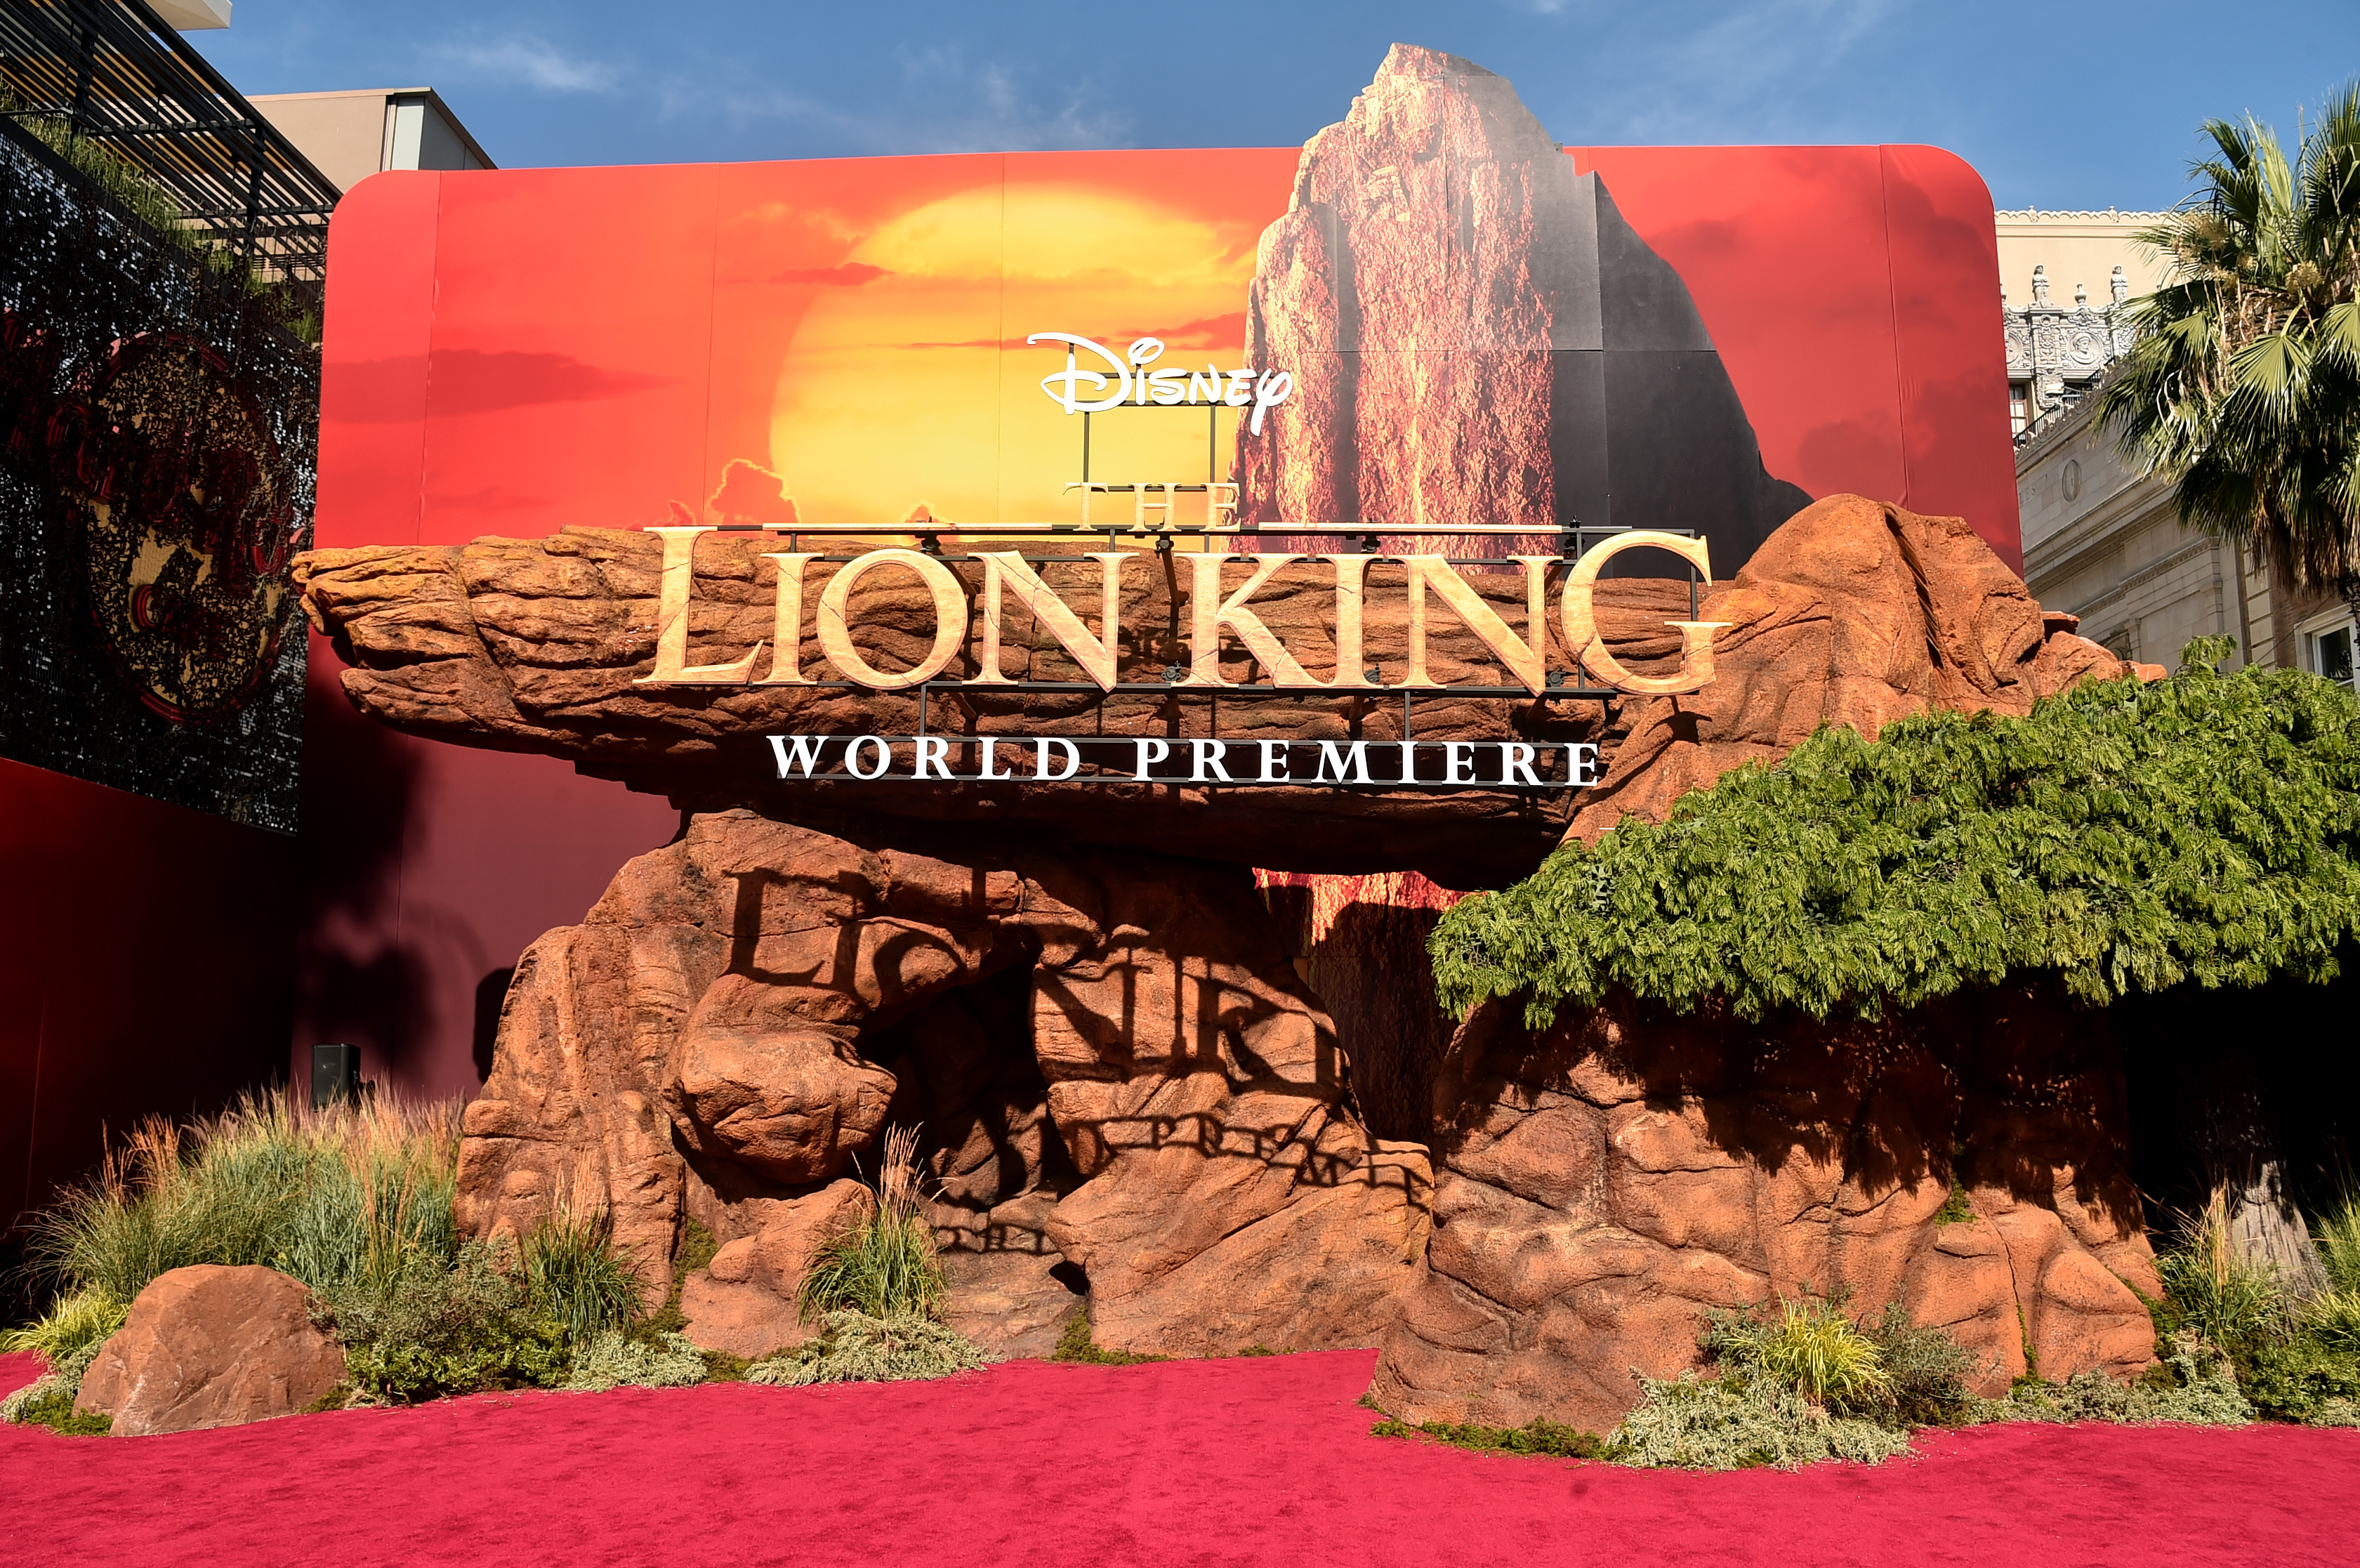 The True Story Behind The Lion King The Washington Post